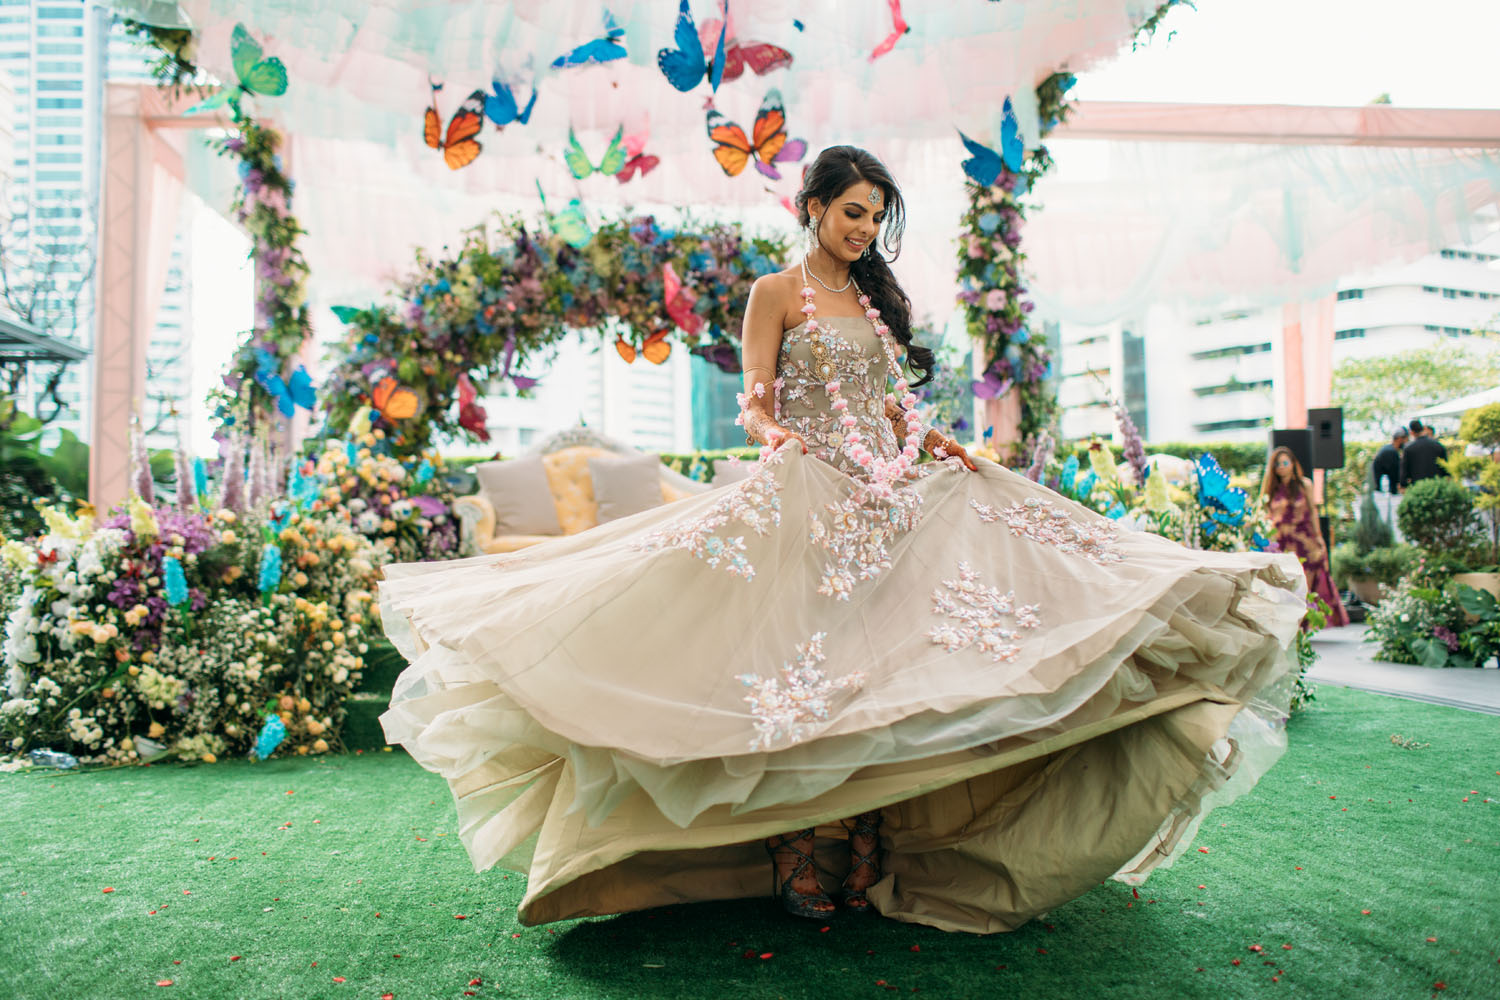 Butterfly Theme Decor & a Twirling Bride